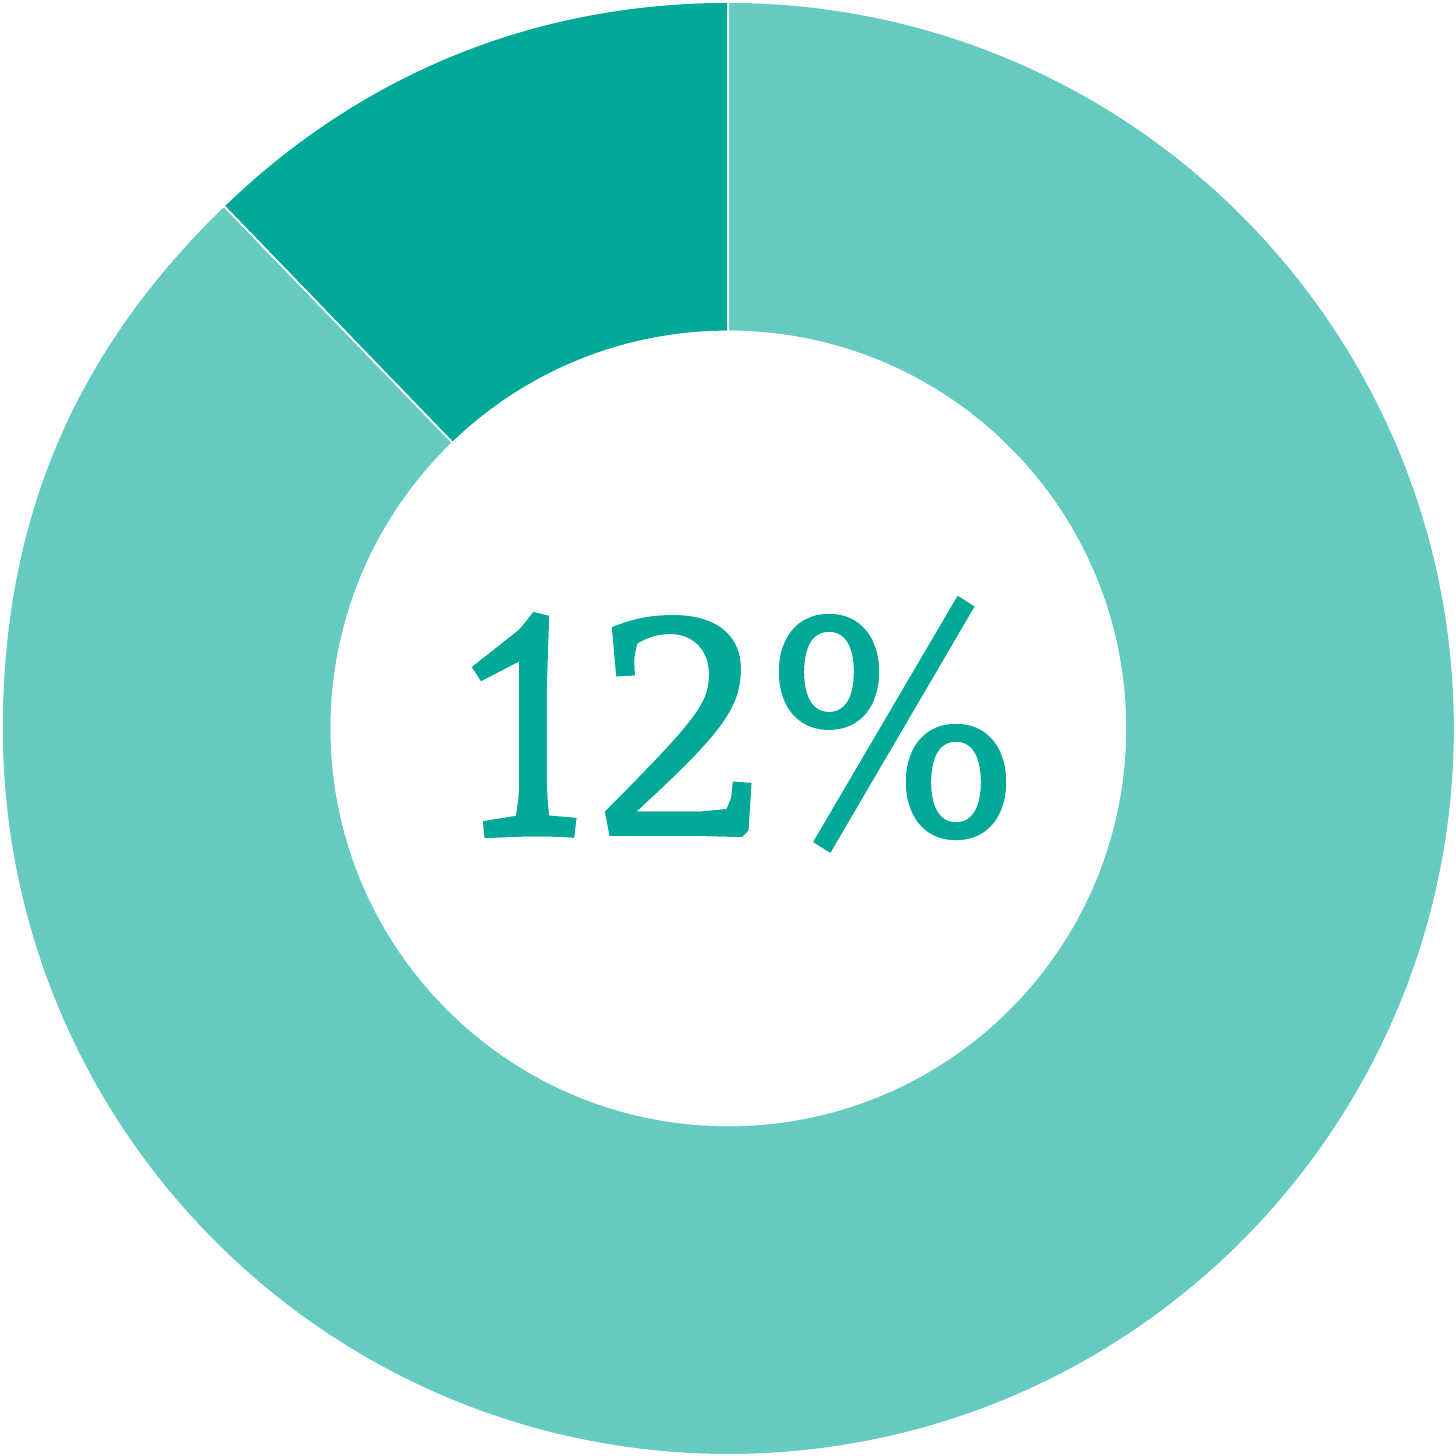 Donut chart showing 12% filled in